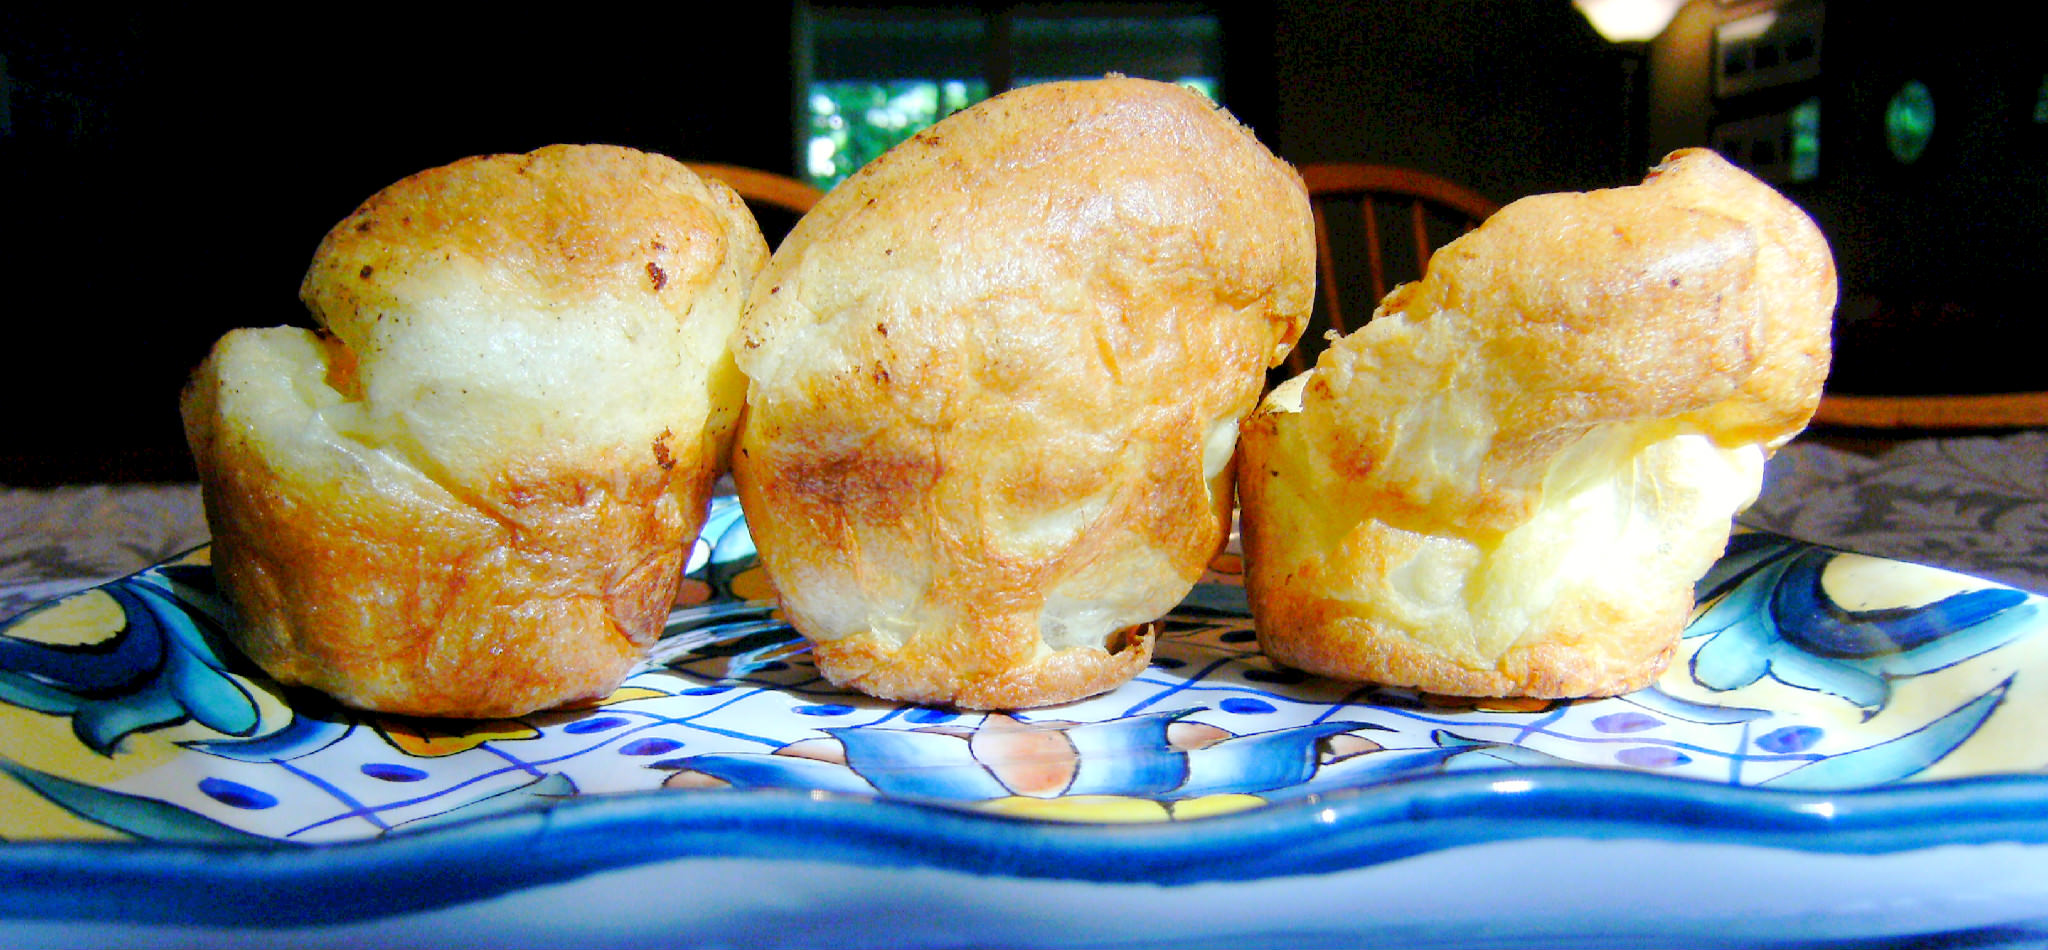 Super Easy Popovers   ComfortablyDomestic.com - Popovers are light and fluffy and perfect for serving with any comfort food dinner. Just 5 ingredients and only 5 minutes prep to get them into the oven, makes these super easy popovers!